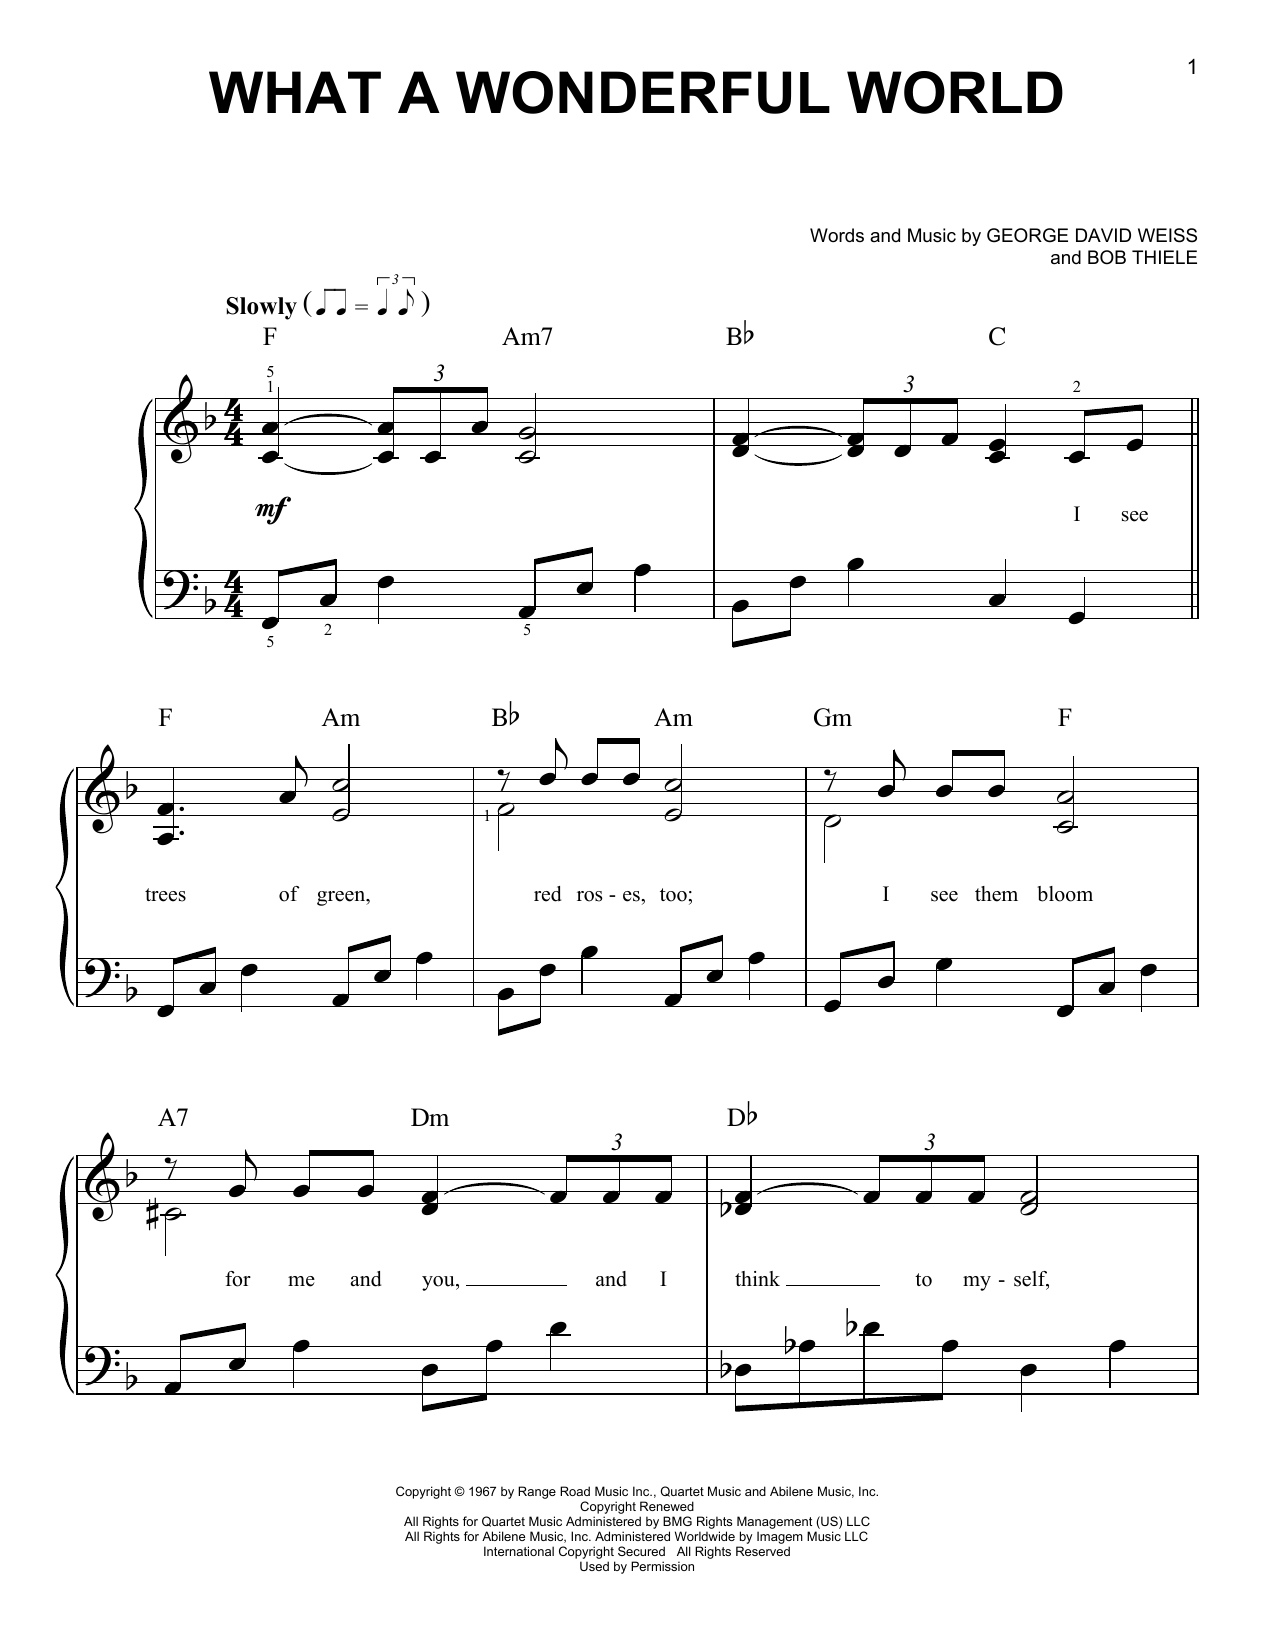 Louis Armstrong Weihnachtslieder.What A Wonderful World By Louis Armstrong Easy Piano Digital Sheet